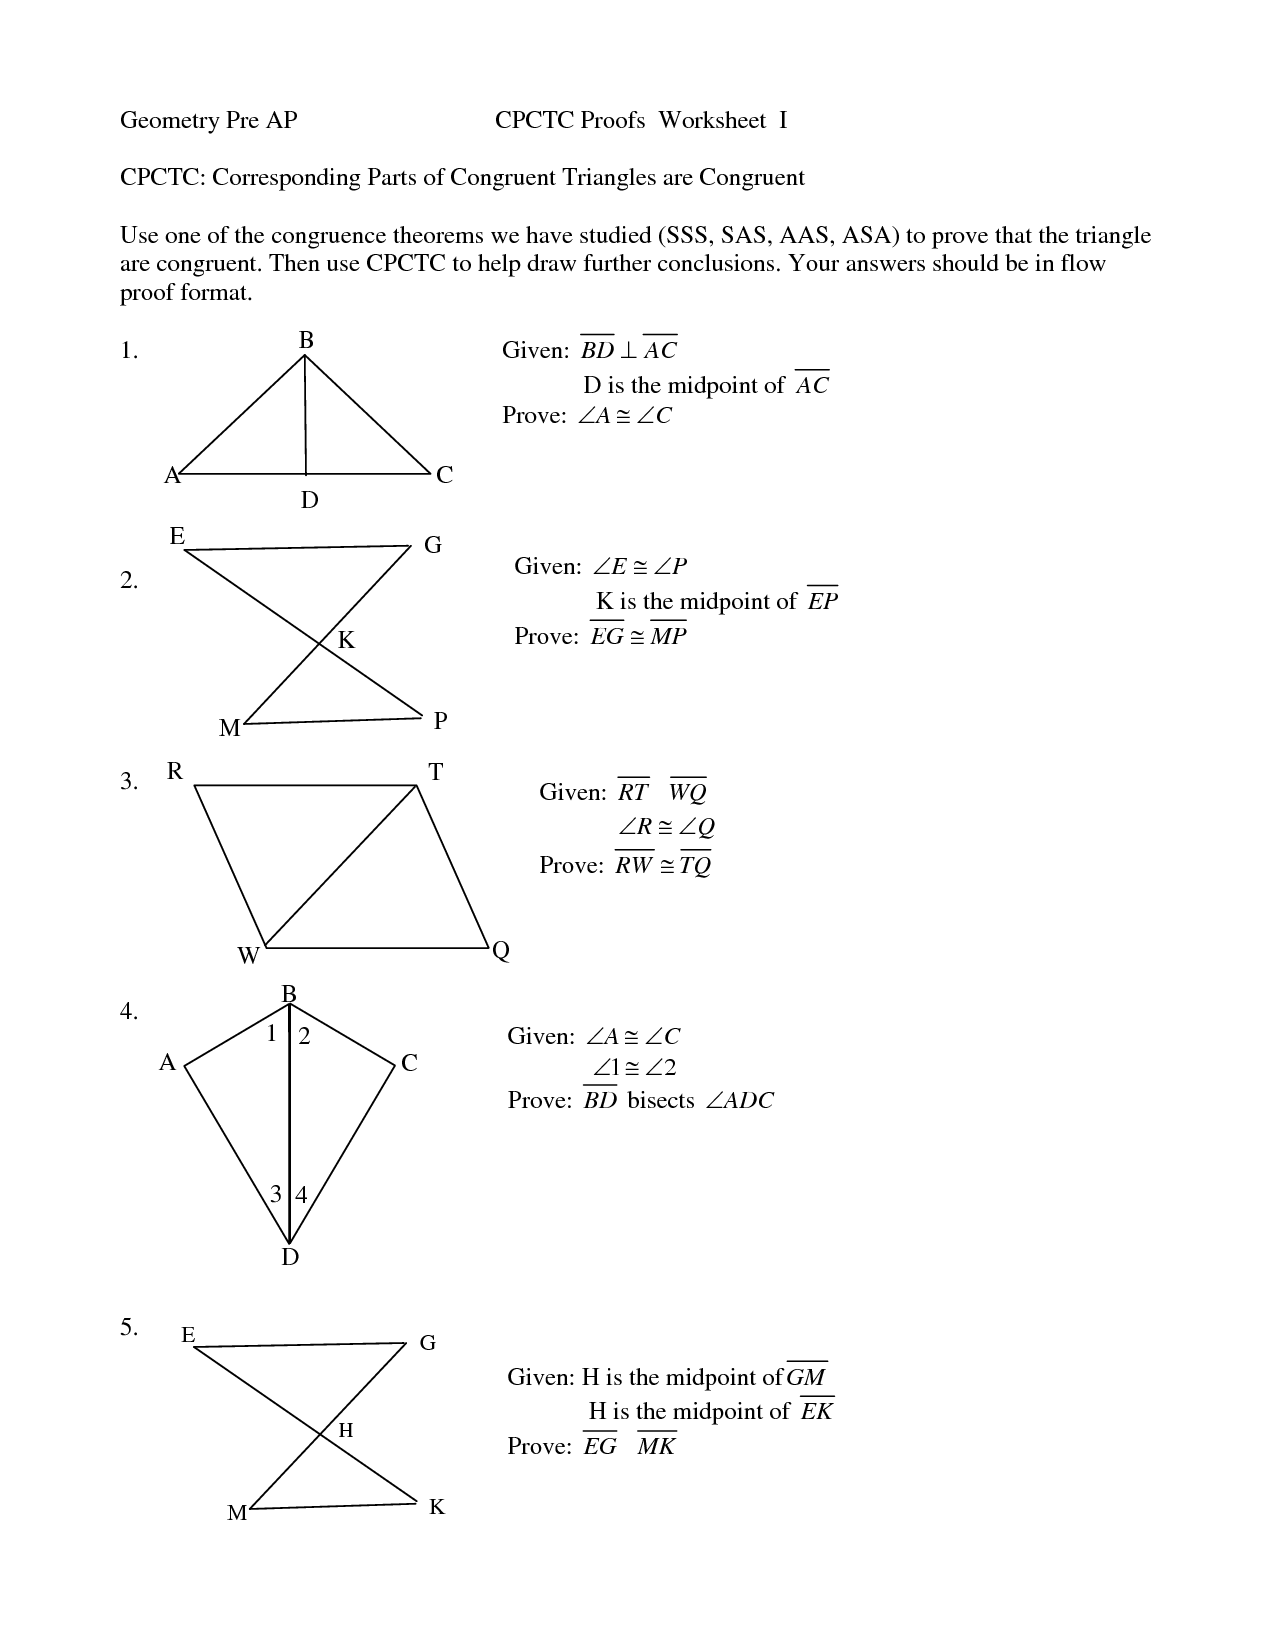 worksheet Congruent Triangle Proofs Worksheet triangle congruence worksheet google search fabric pinterest search